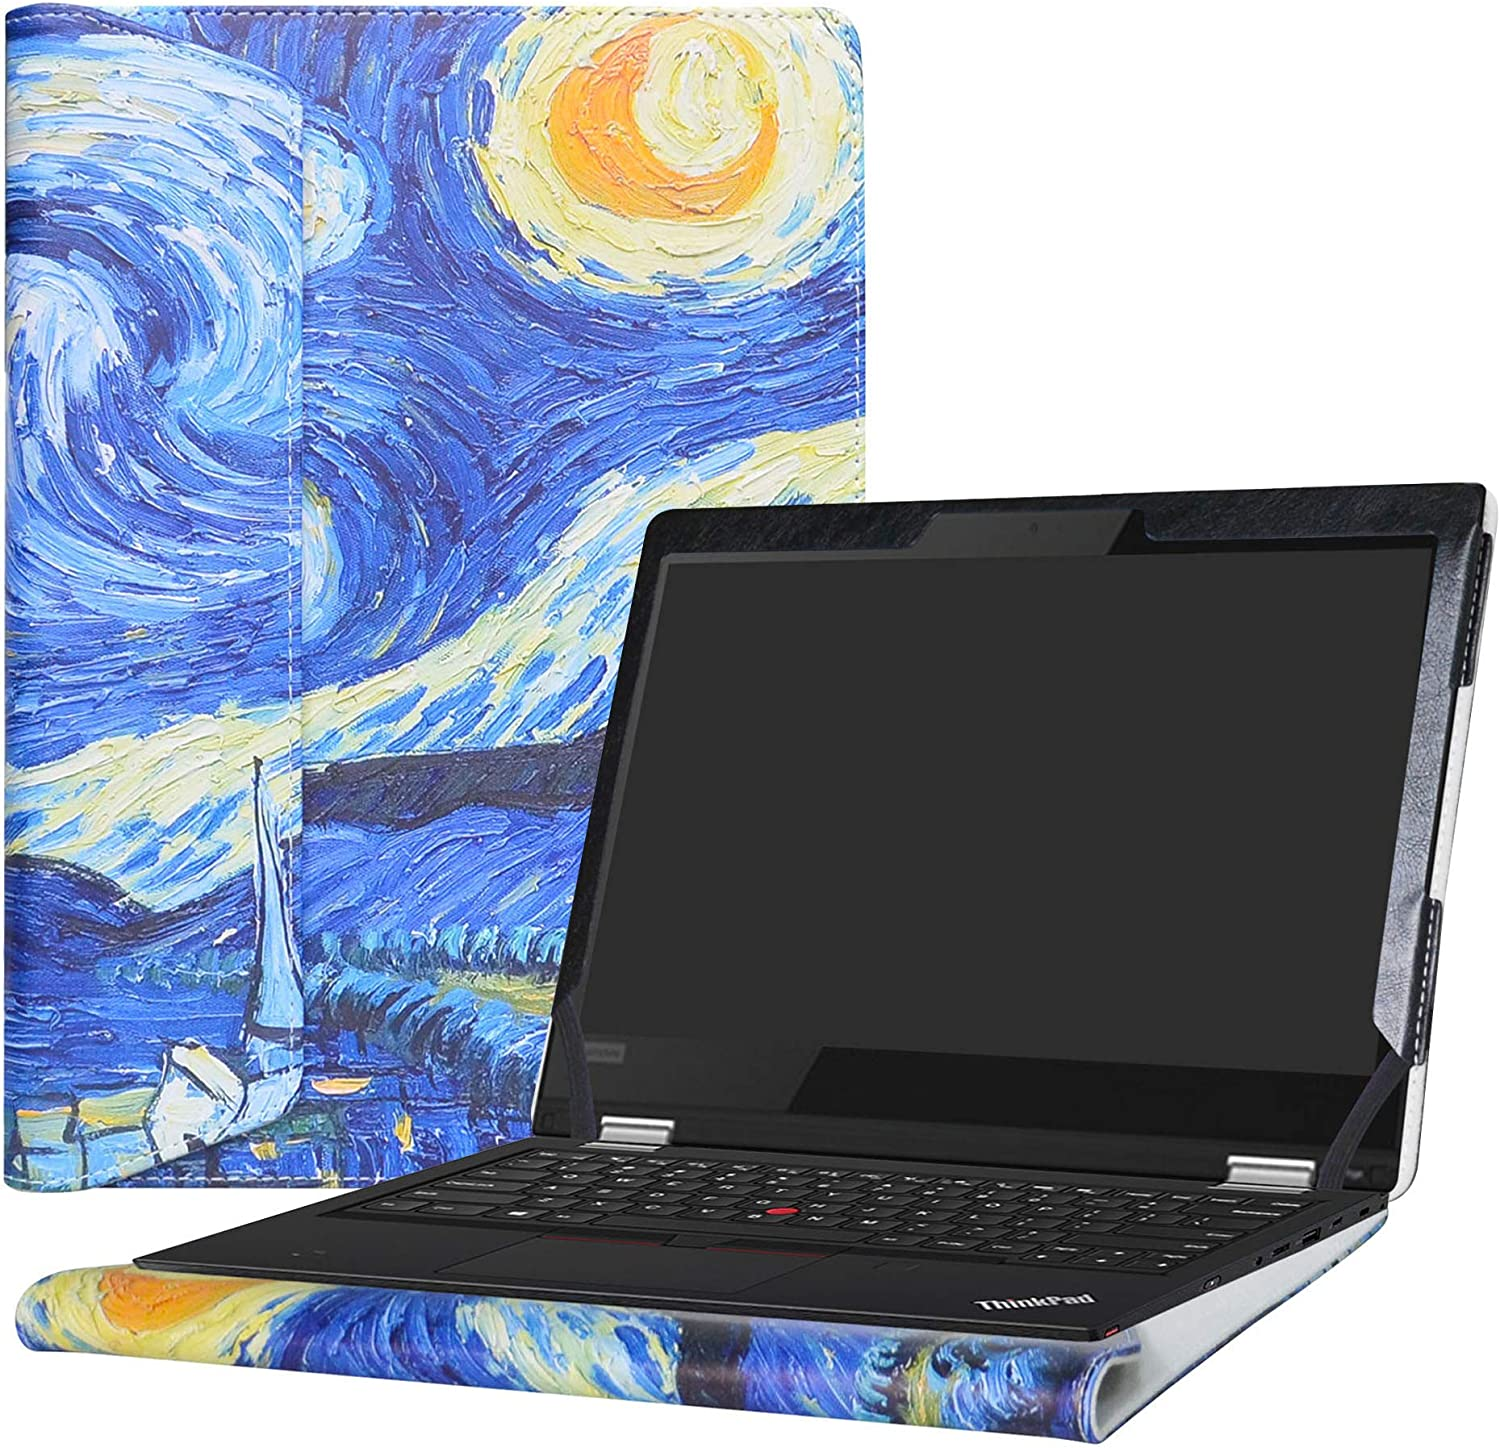 "Alapmk Protective Case Cover For 13.3"" Lenovo ThinkPad L380 Yoga/L390 Yoga/ThinkPad L380 L390 & Lenovo ThinkPad 13 Chromebook/ThinkPad 13 Series Laptop(Warning:Not fit Other model),Starry Night"